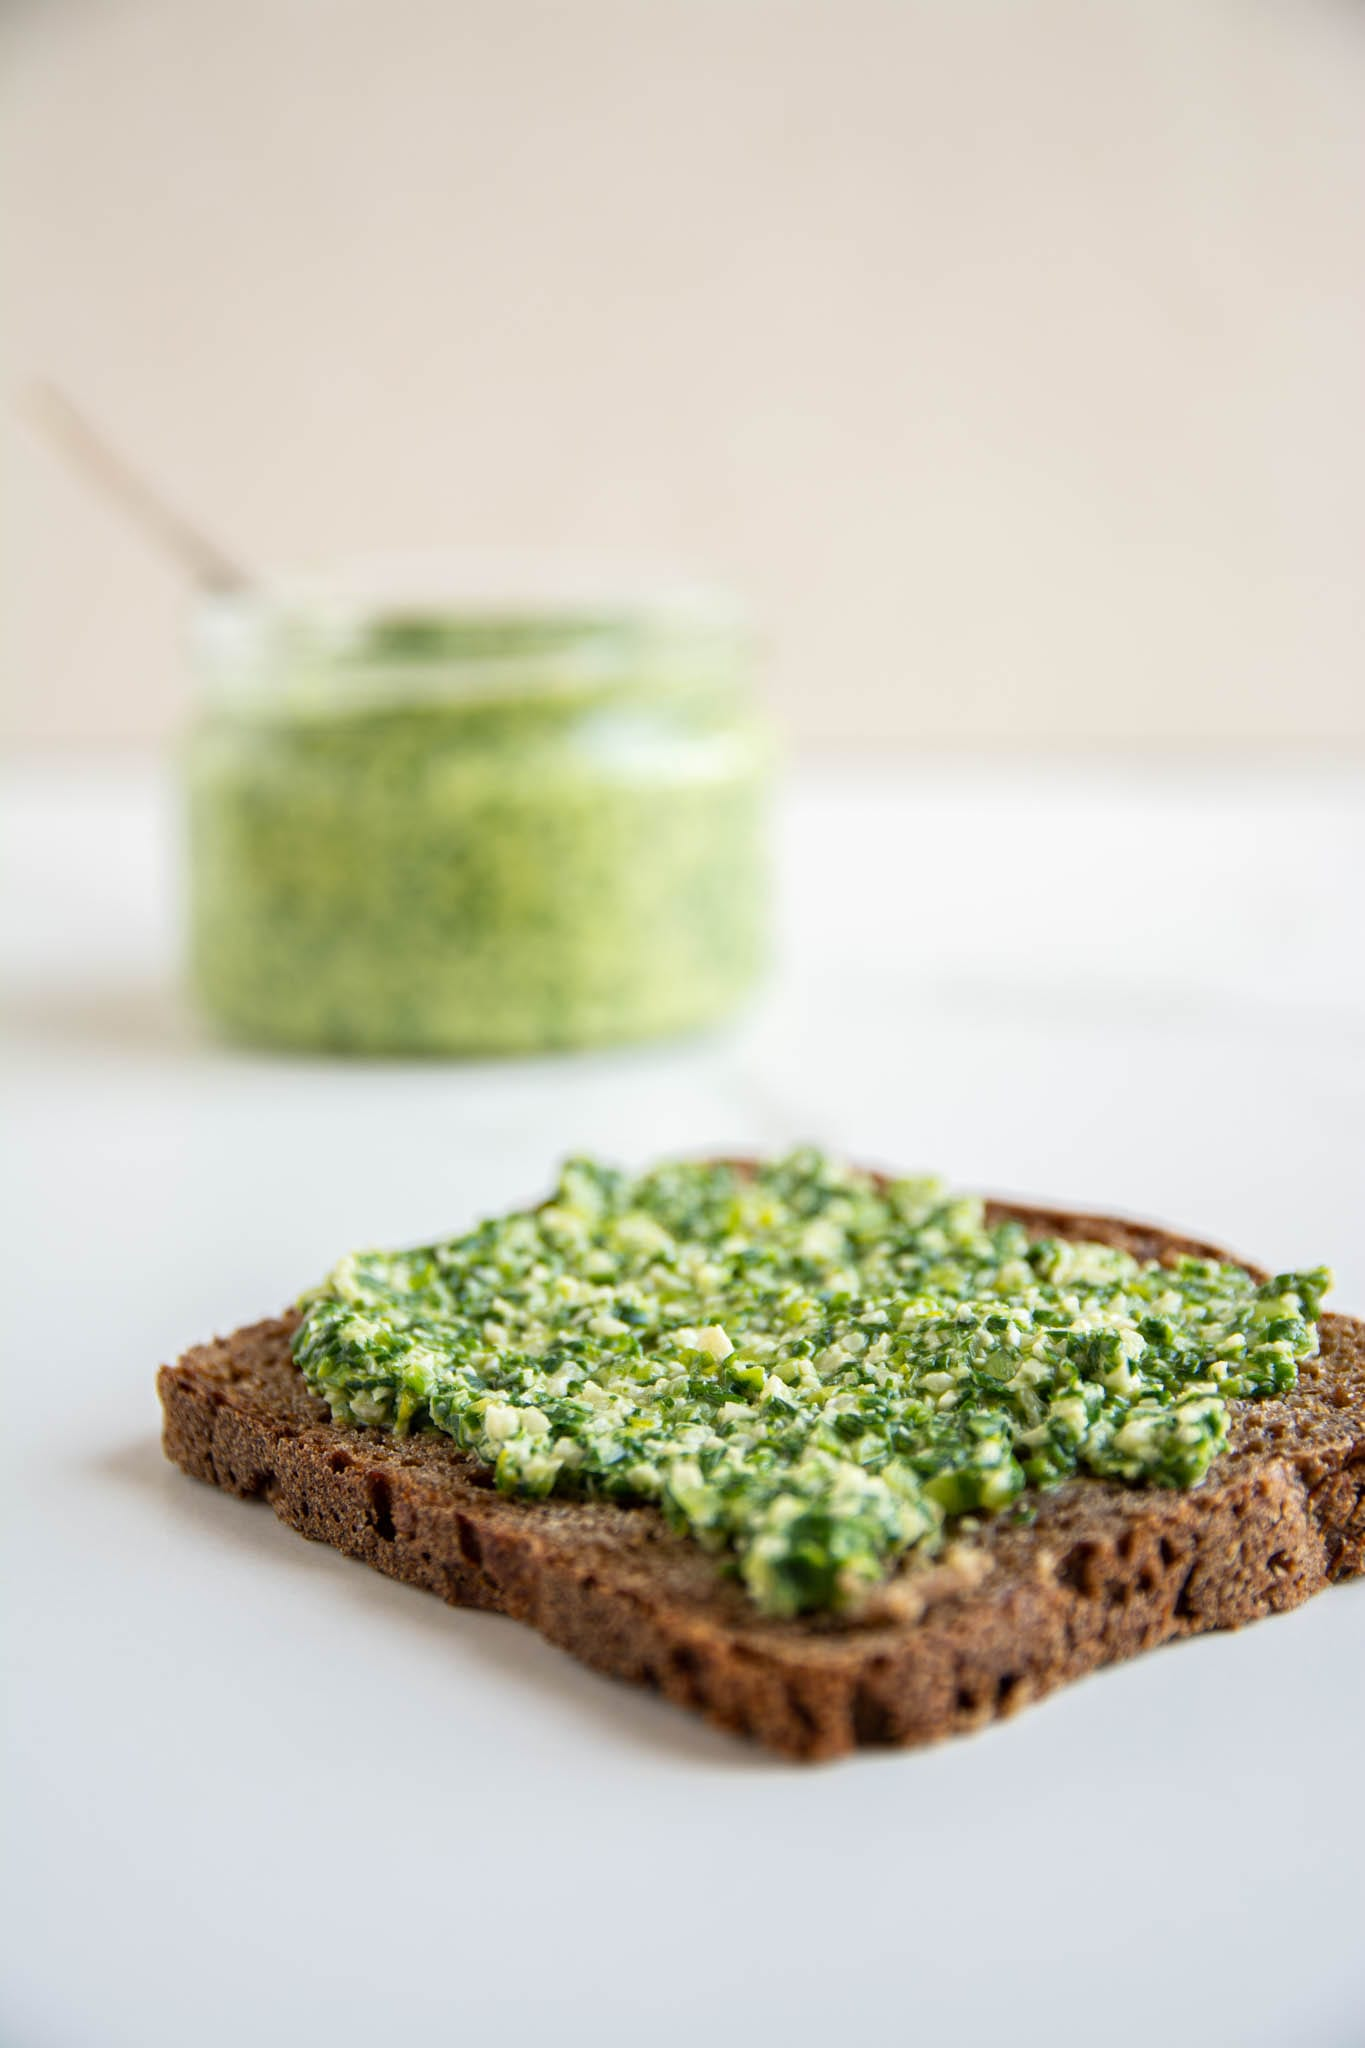 Learn how to make vegan oil-free wild garlic pesto with just 4 ingredients (not counting salt and water). Spread it on a slice of sourdough bread, make pesto pasta or add to salads, stews and Buddha bowls.